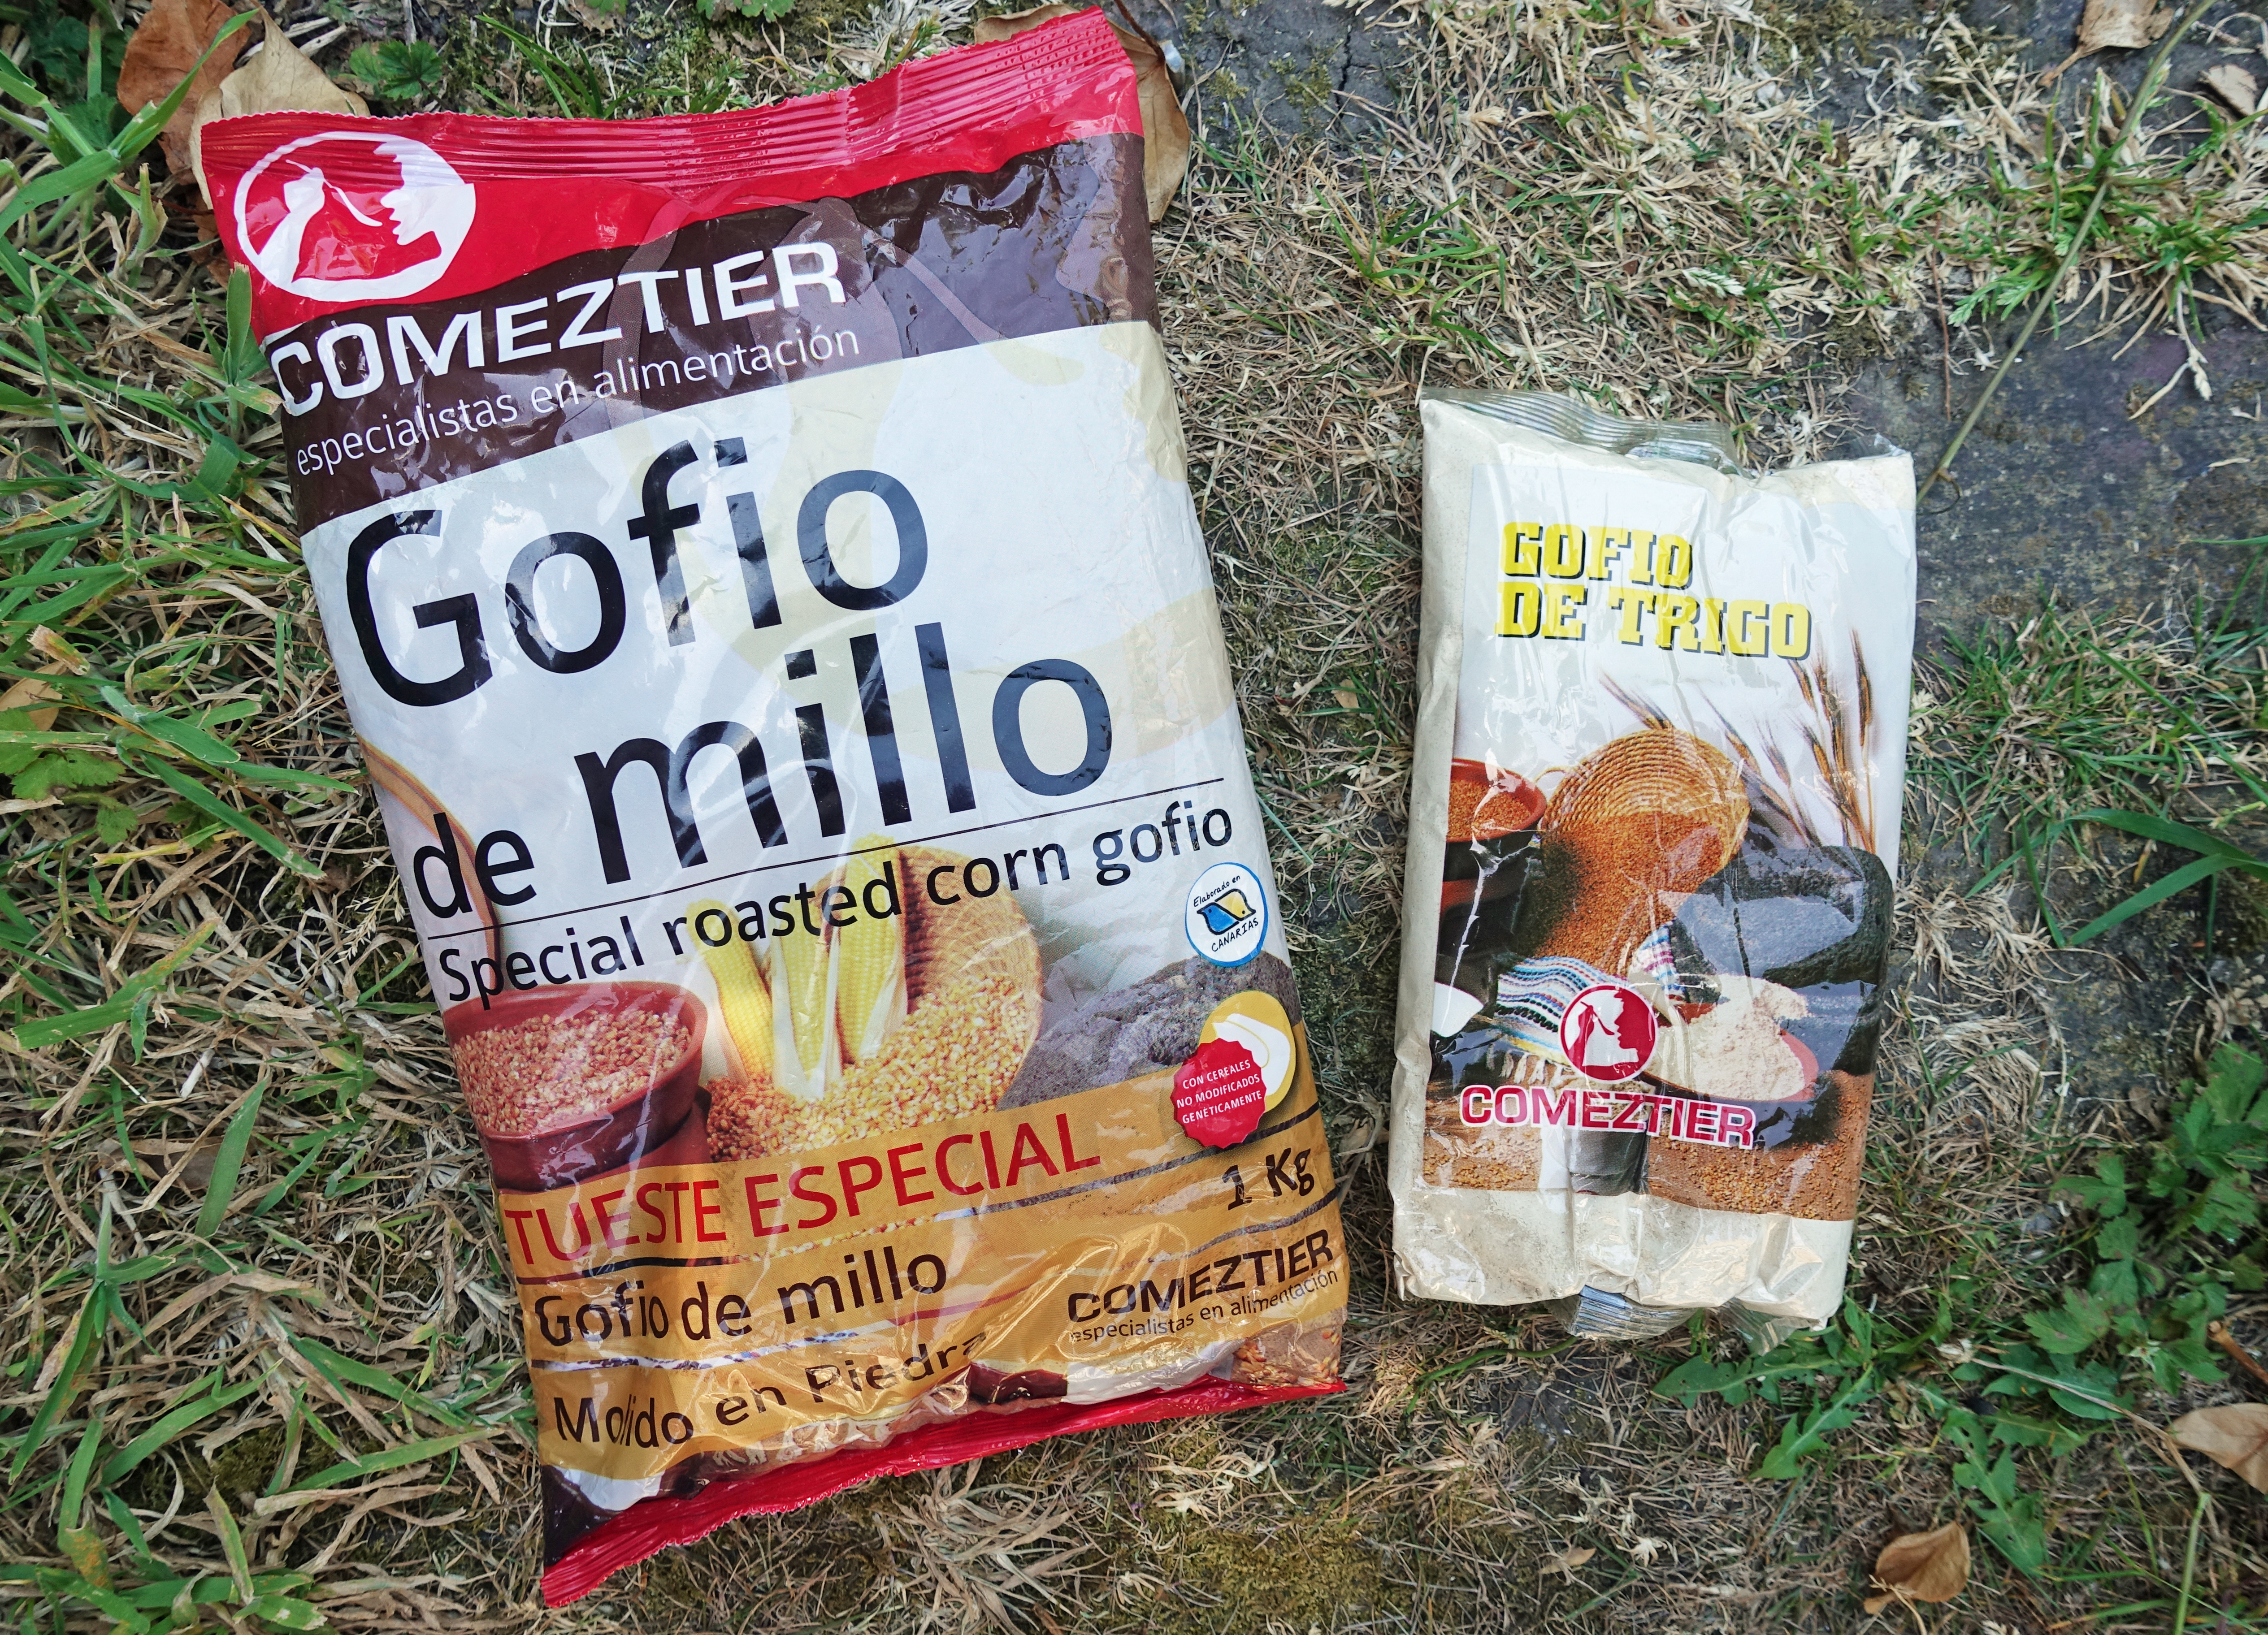 Gofio de Millo is made from ground and roasted corn (actually maize) while Gofio de Trigo is roasted wheat